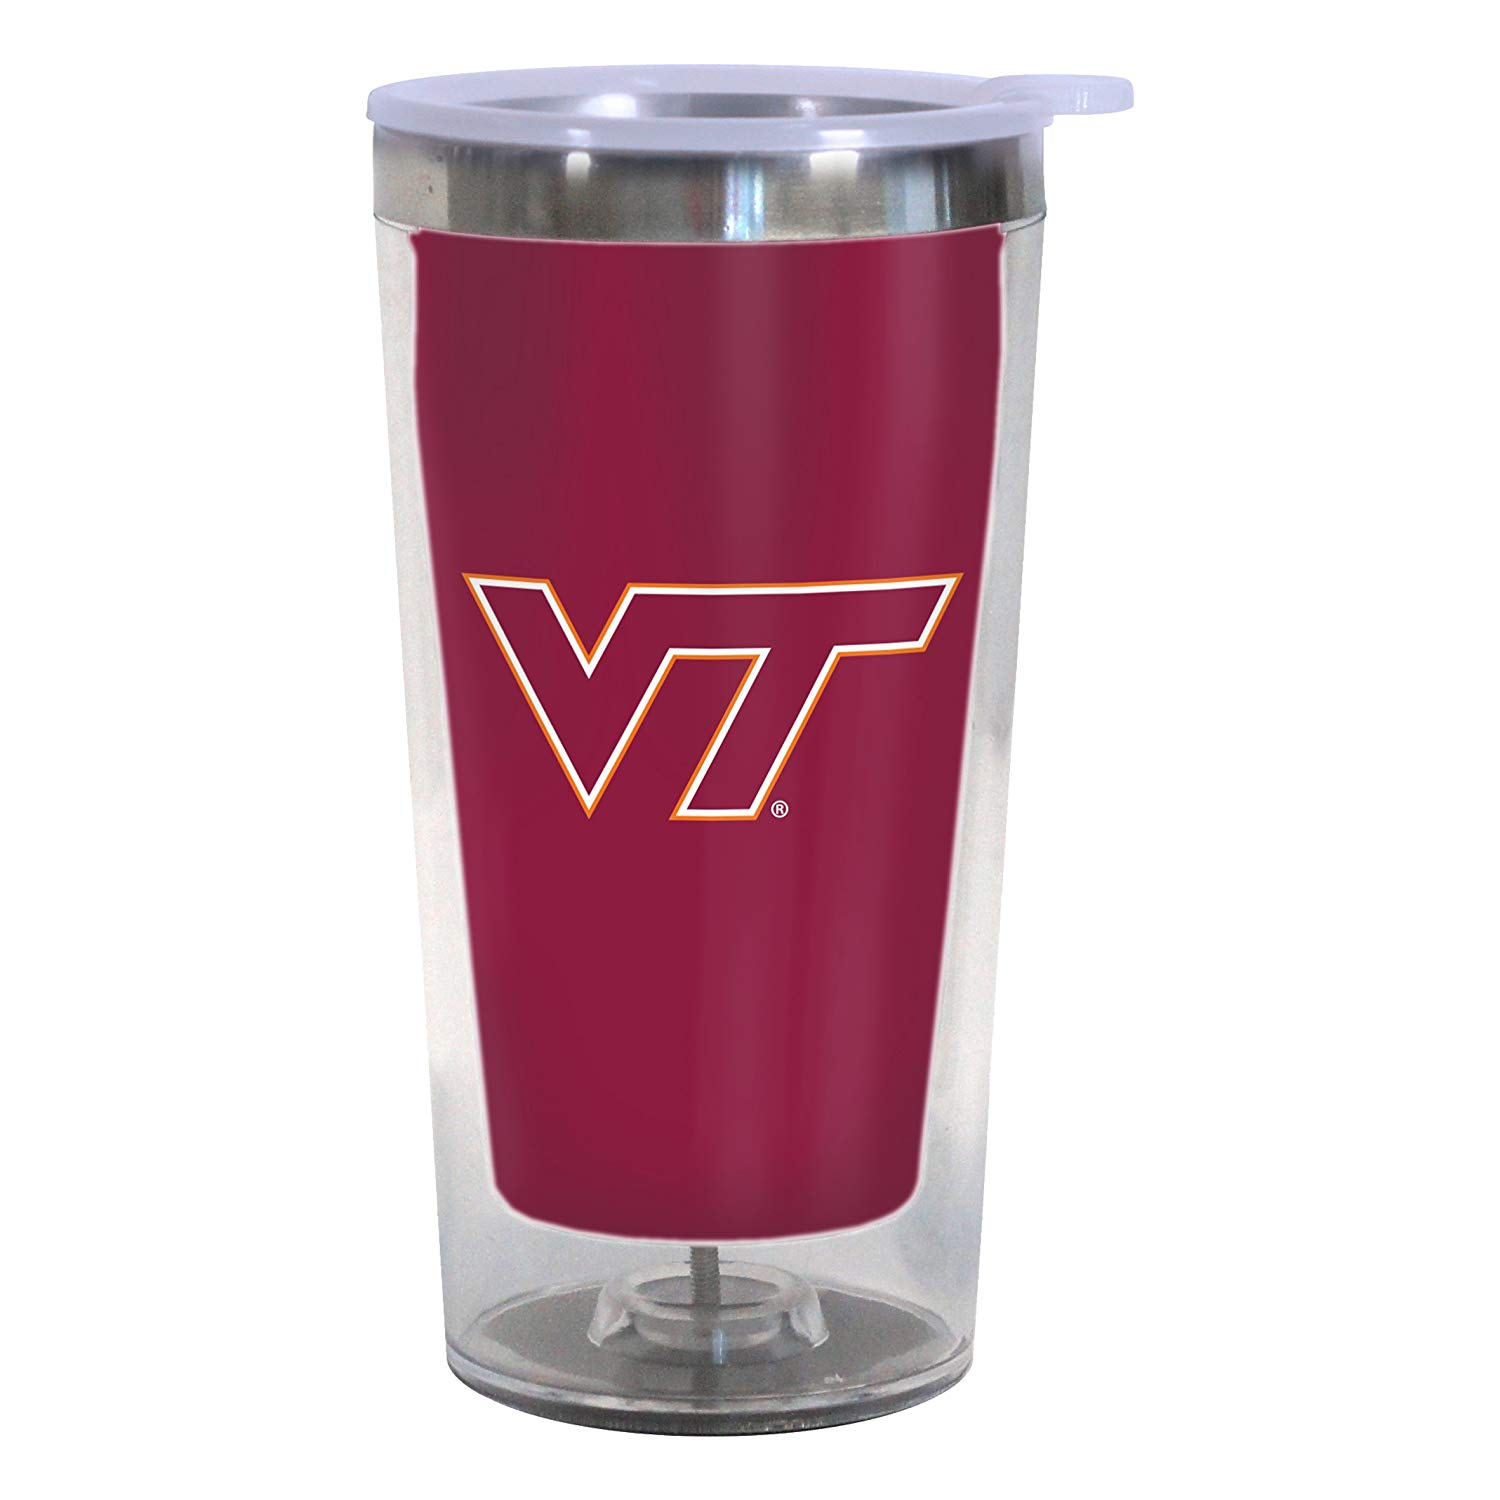 Virginia Tech Hokies 16-Ounce Color Change Tumbler with Lid